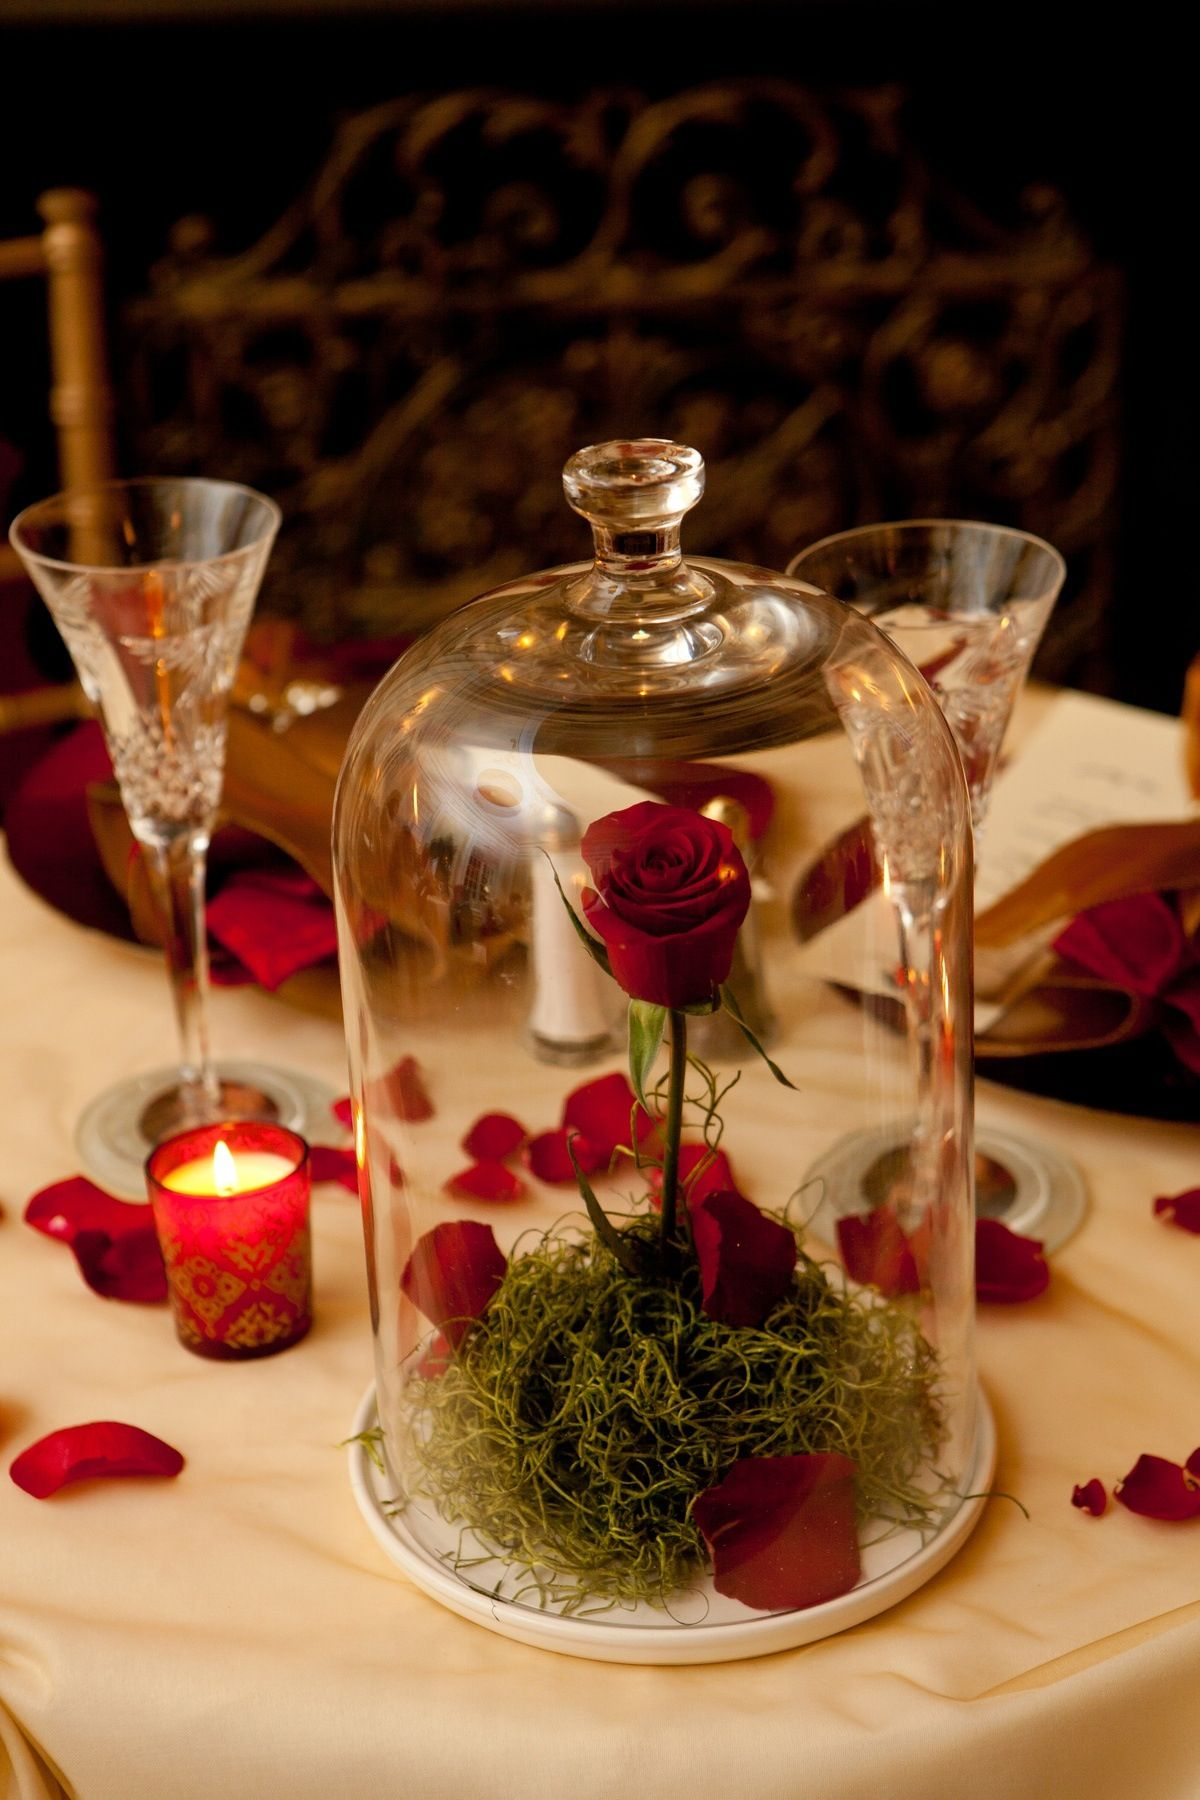 Centerpiece Idea For Beauty And The Beast Theme Omg This Just